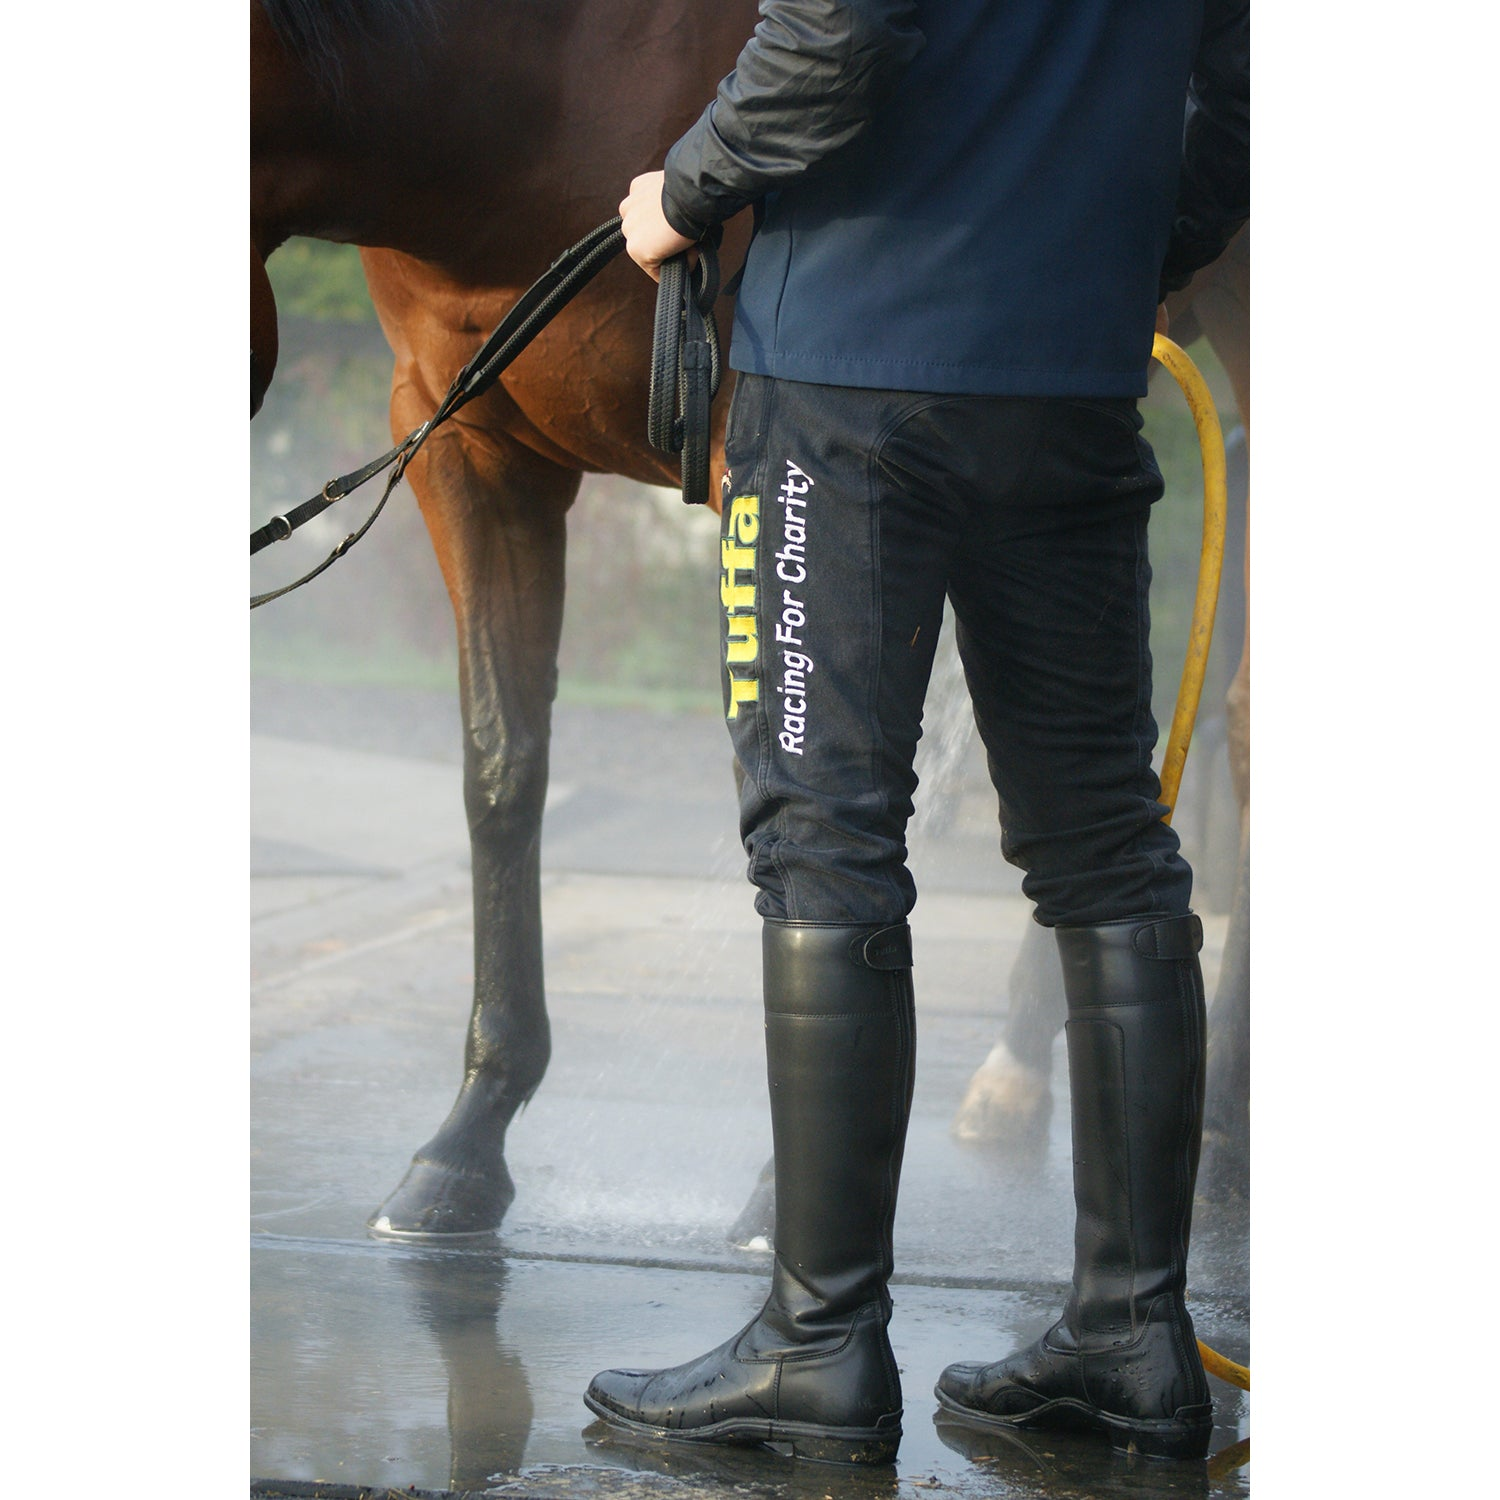 Sandown Winter Racing Boots